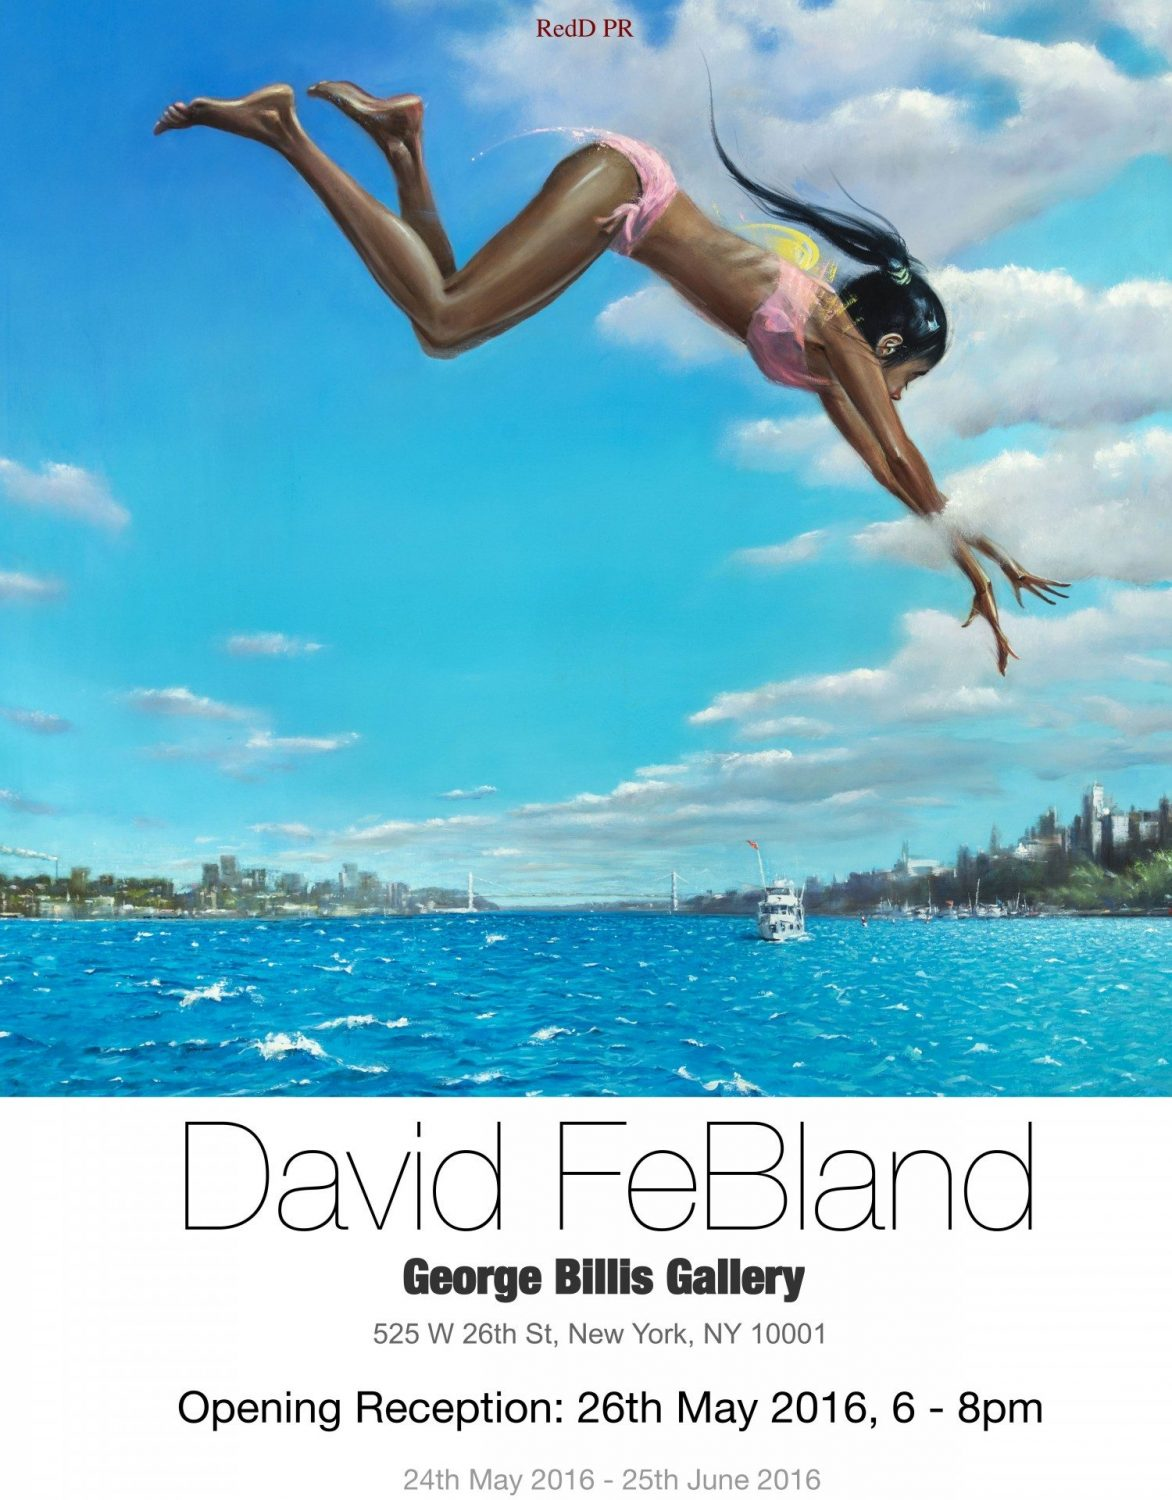 Artist David FeBland To Be Featured At The George Billis Gallery Through Jun. 25